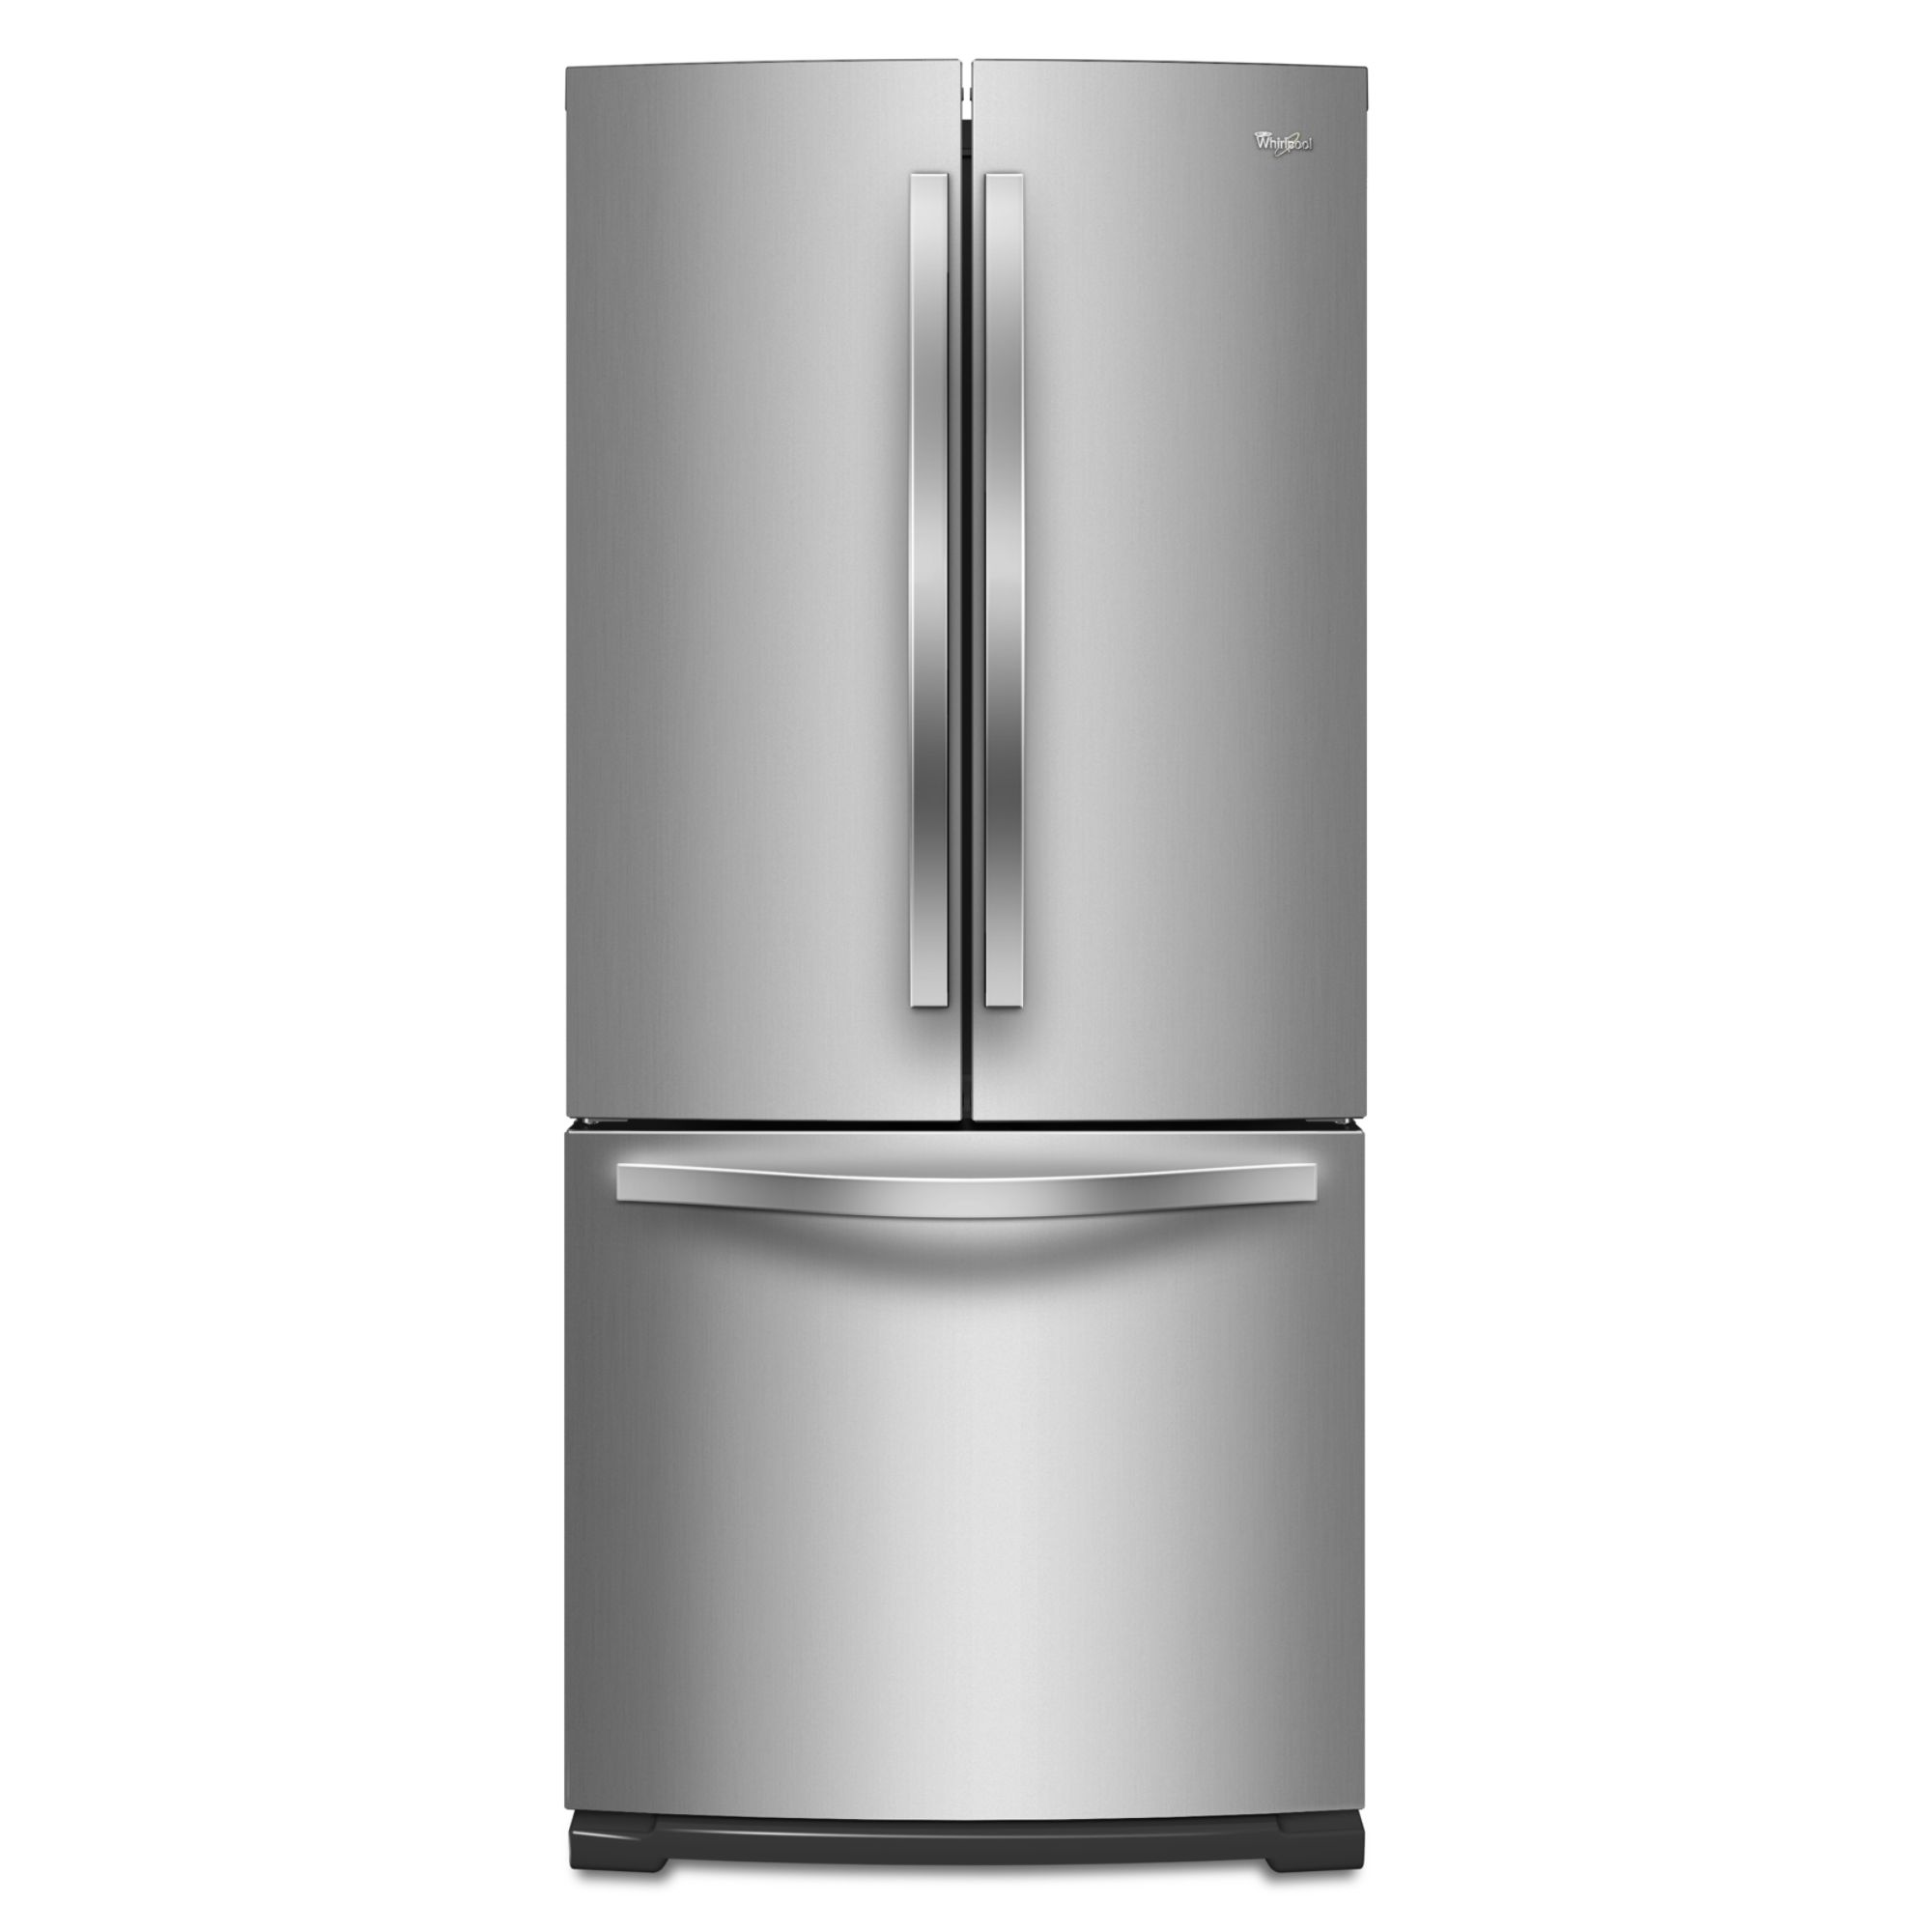 Whirlpool French Door Refrigerator Stainless